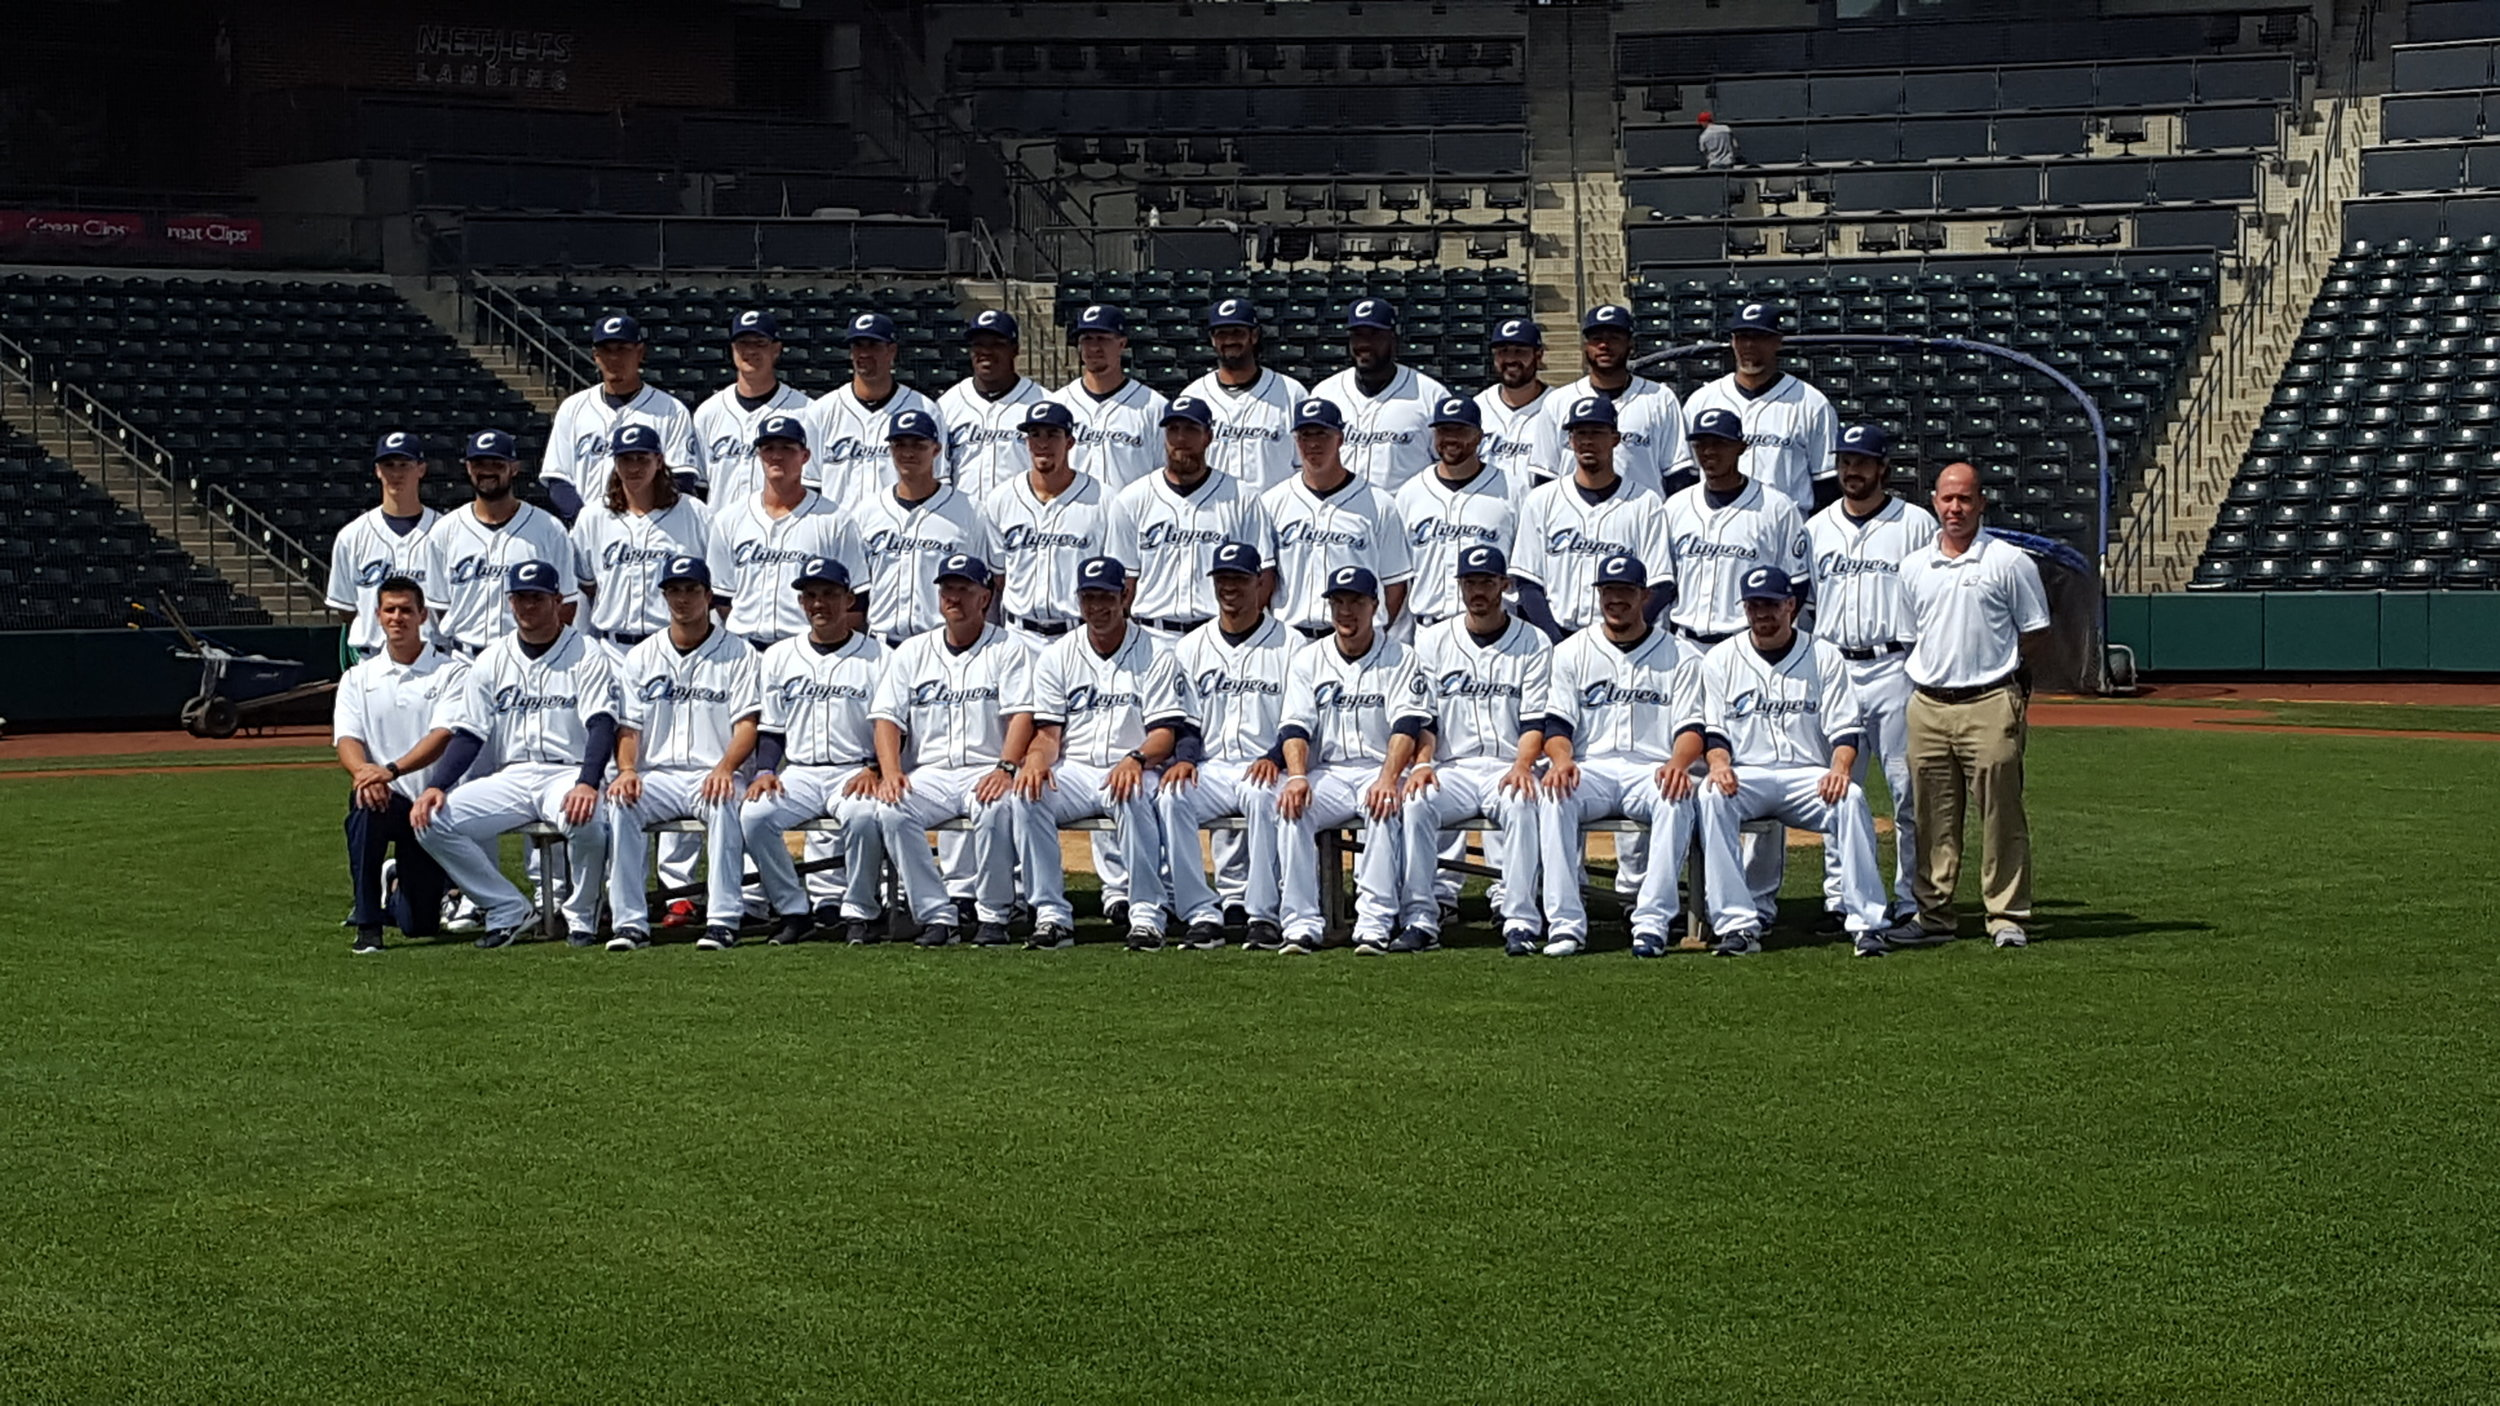 Ladies and gentlemen...your 2017 Columbus Clippers. Photo courtesy of Matt Shock / Our Sports Report.